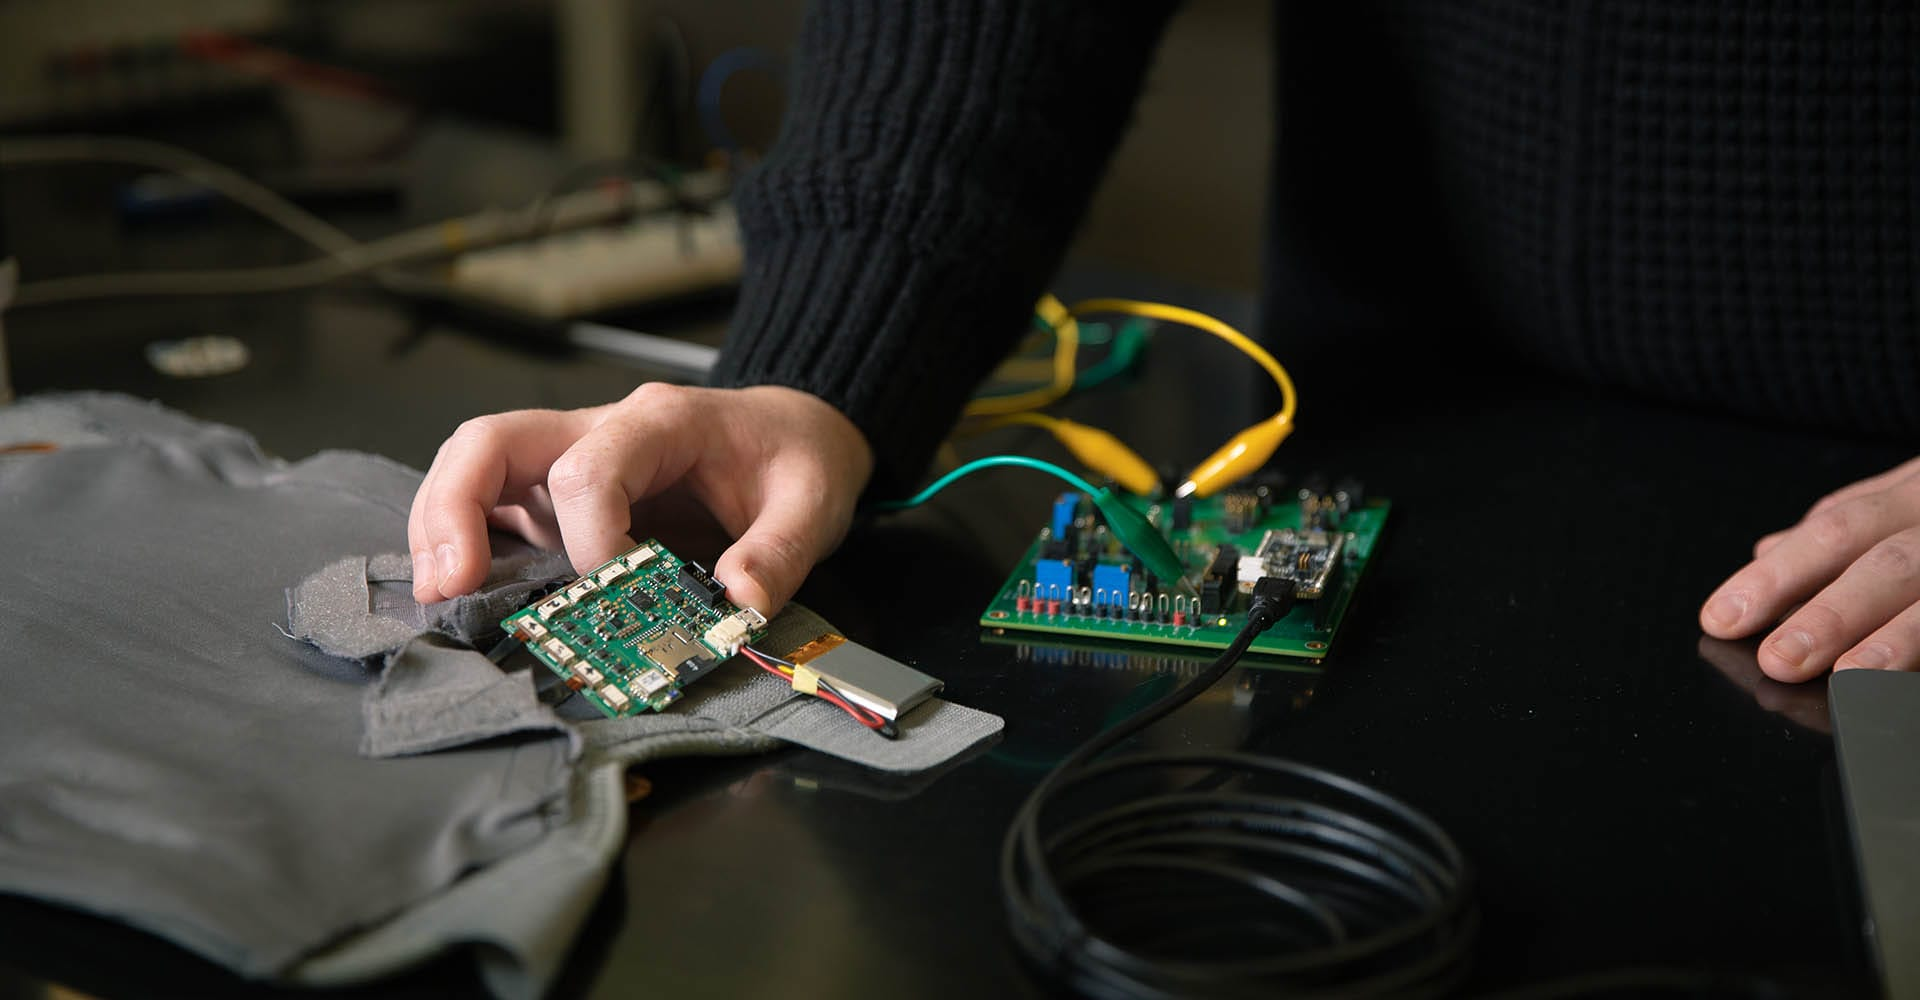 A motherboard is connected to cords as another is examined.